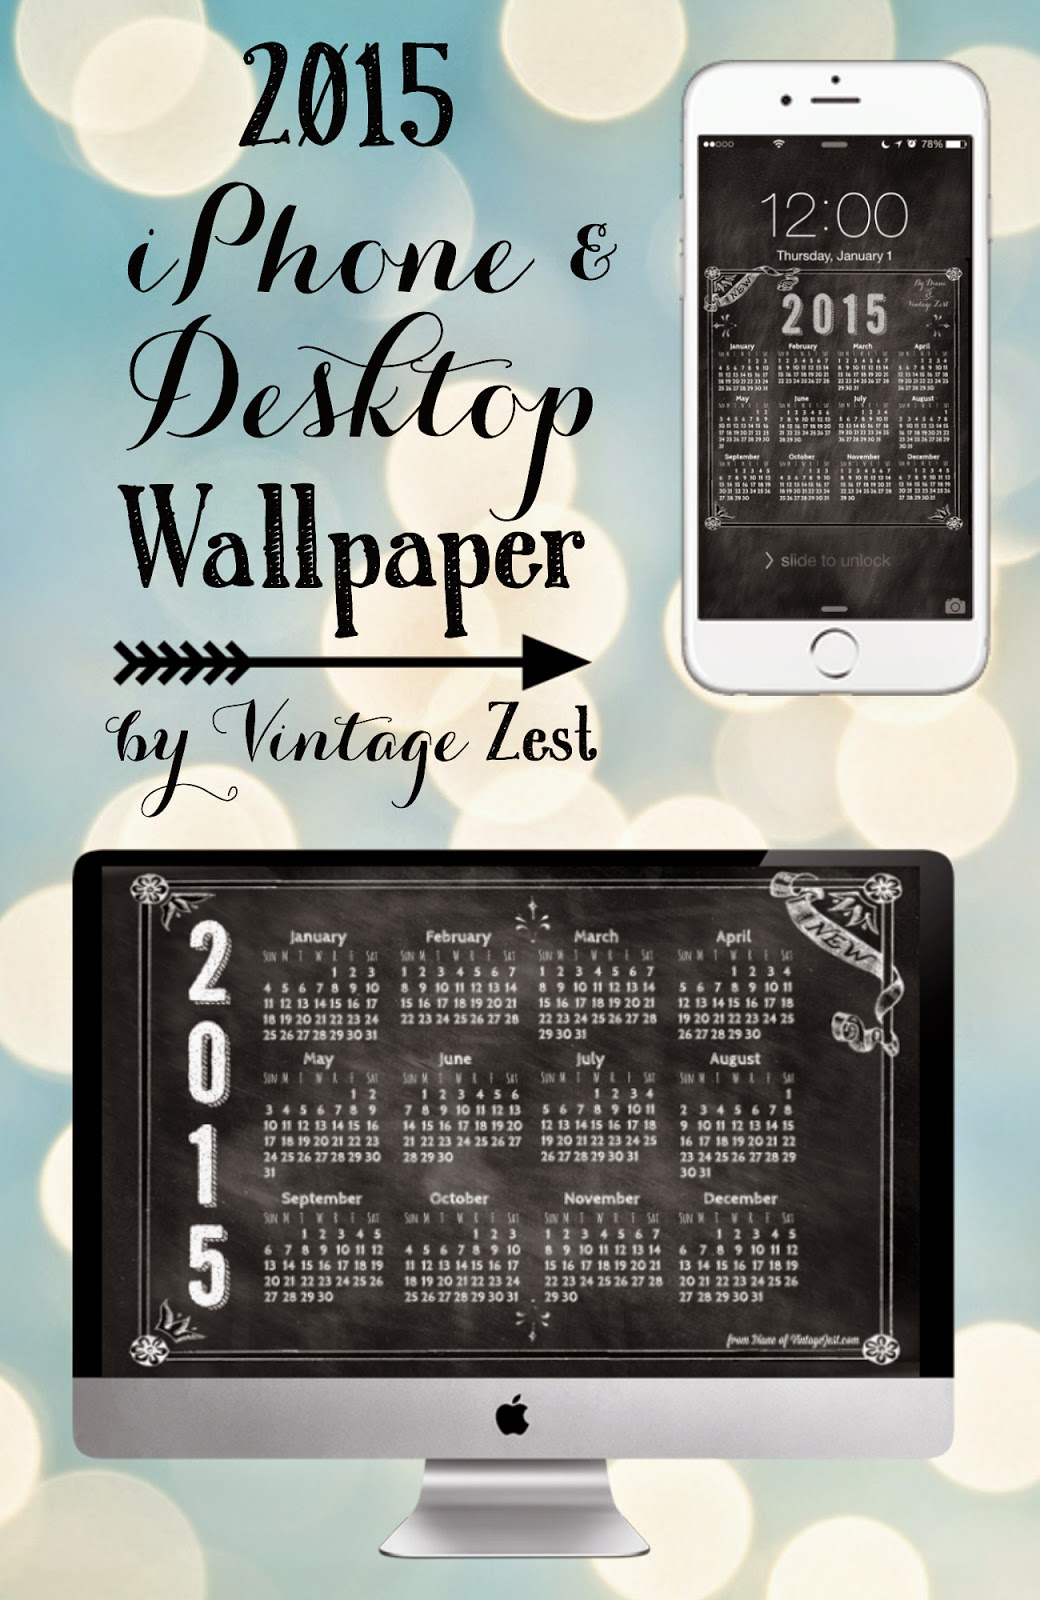 2015 iPhone & Desktop Wallpaper freebies @VintageZest